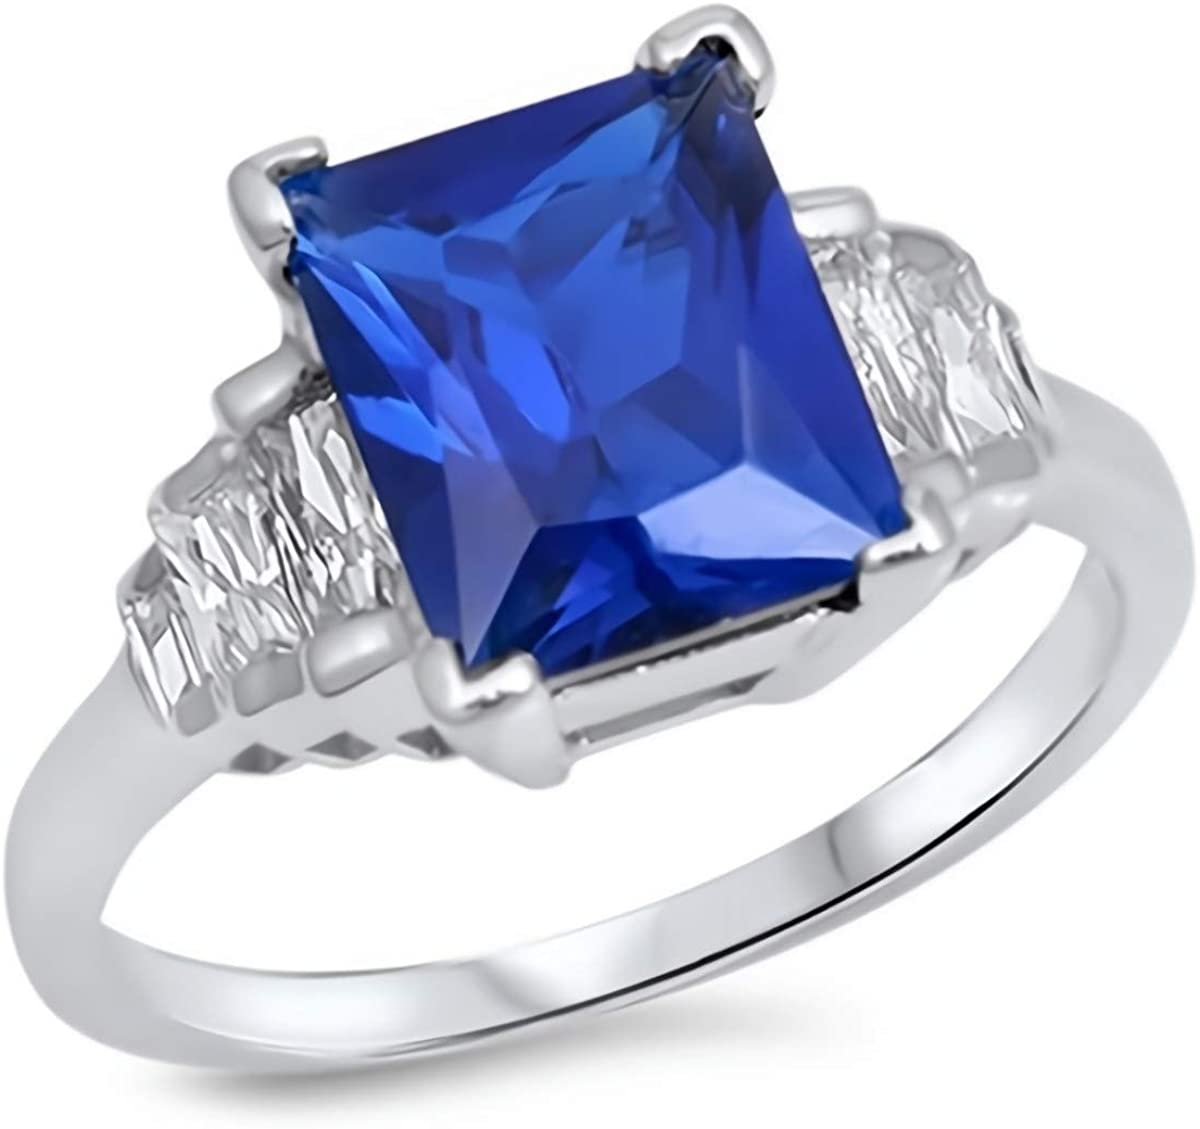 Glitzs Jewels 925 Sterling Silver CZ Ring (Royal Blue & Clear) | Cubic Zirconia Jewelry Gift